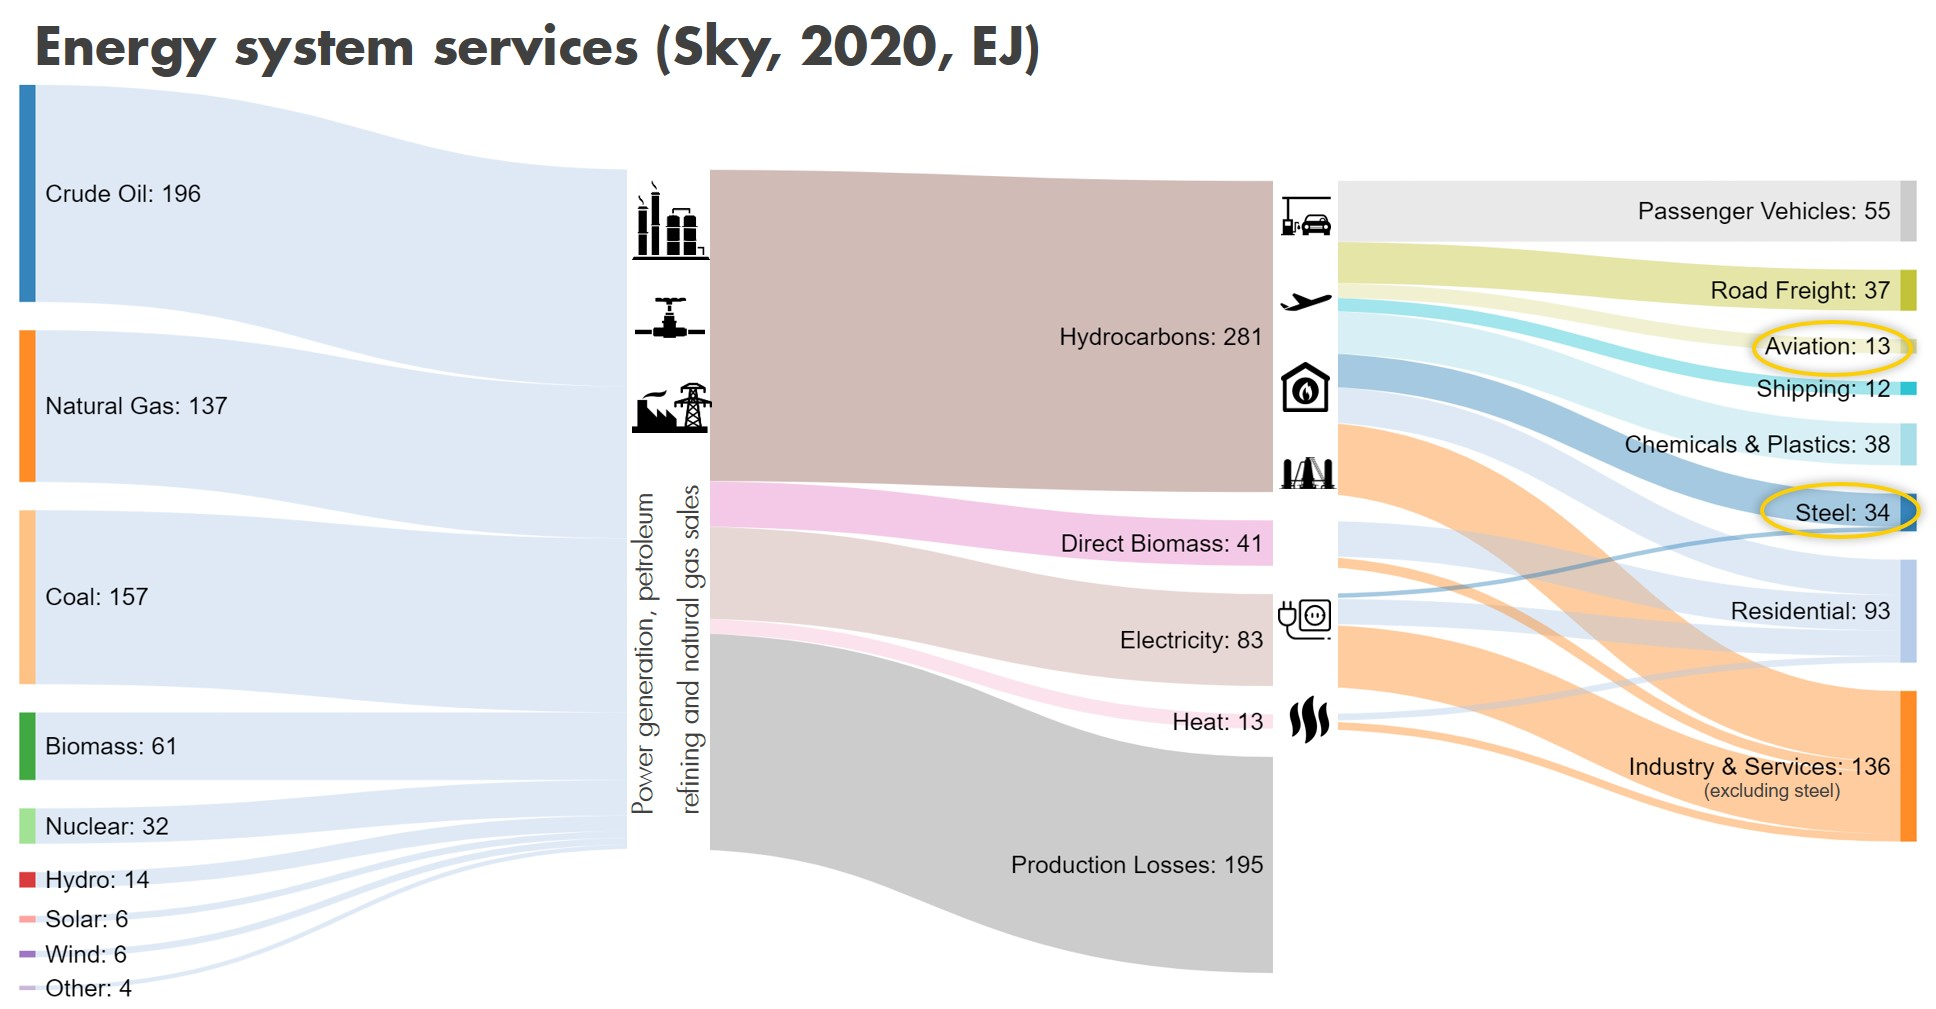 Energy System Services - Sky 2020